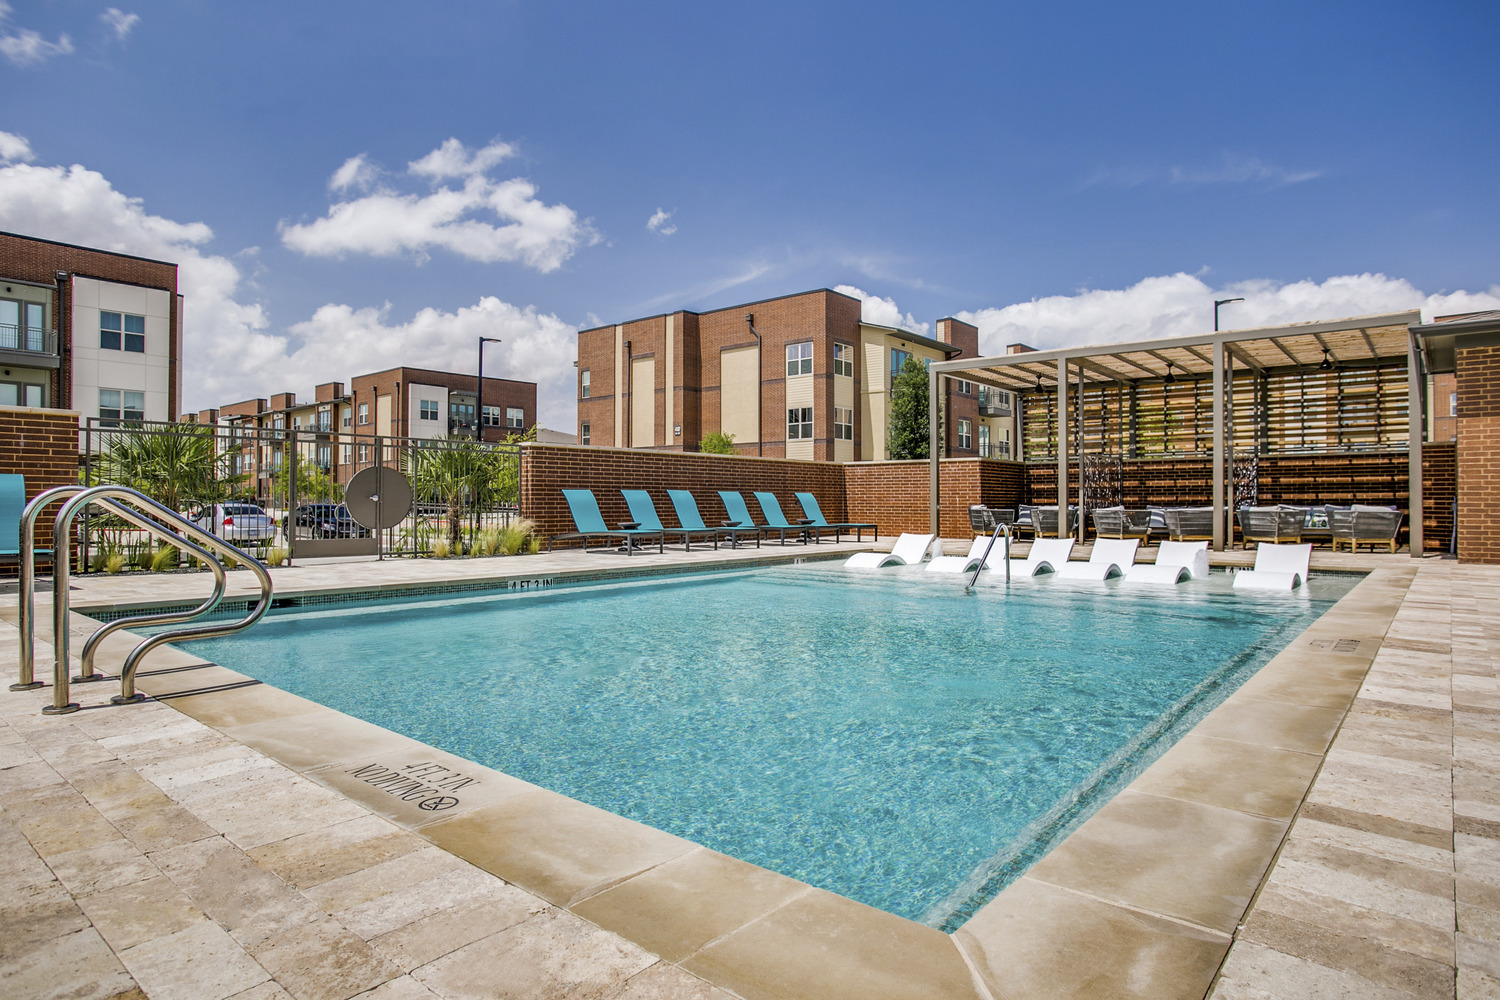 CBG builds Domain at the One Forty, a 10-Building Garden-Style Community with Amenities in Garland, TX - Image #6